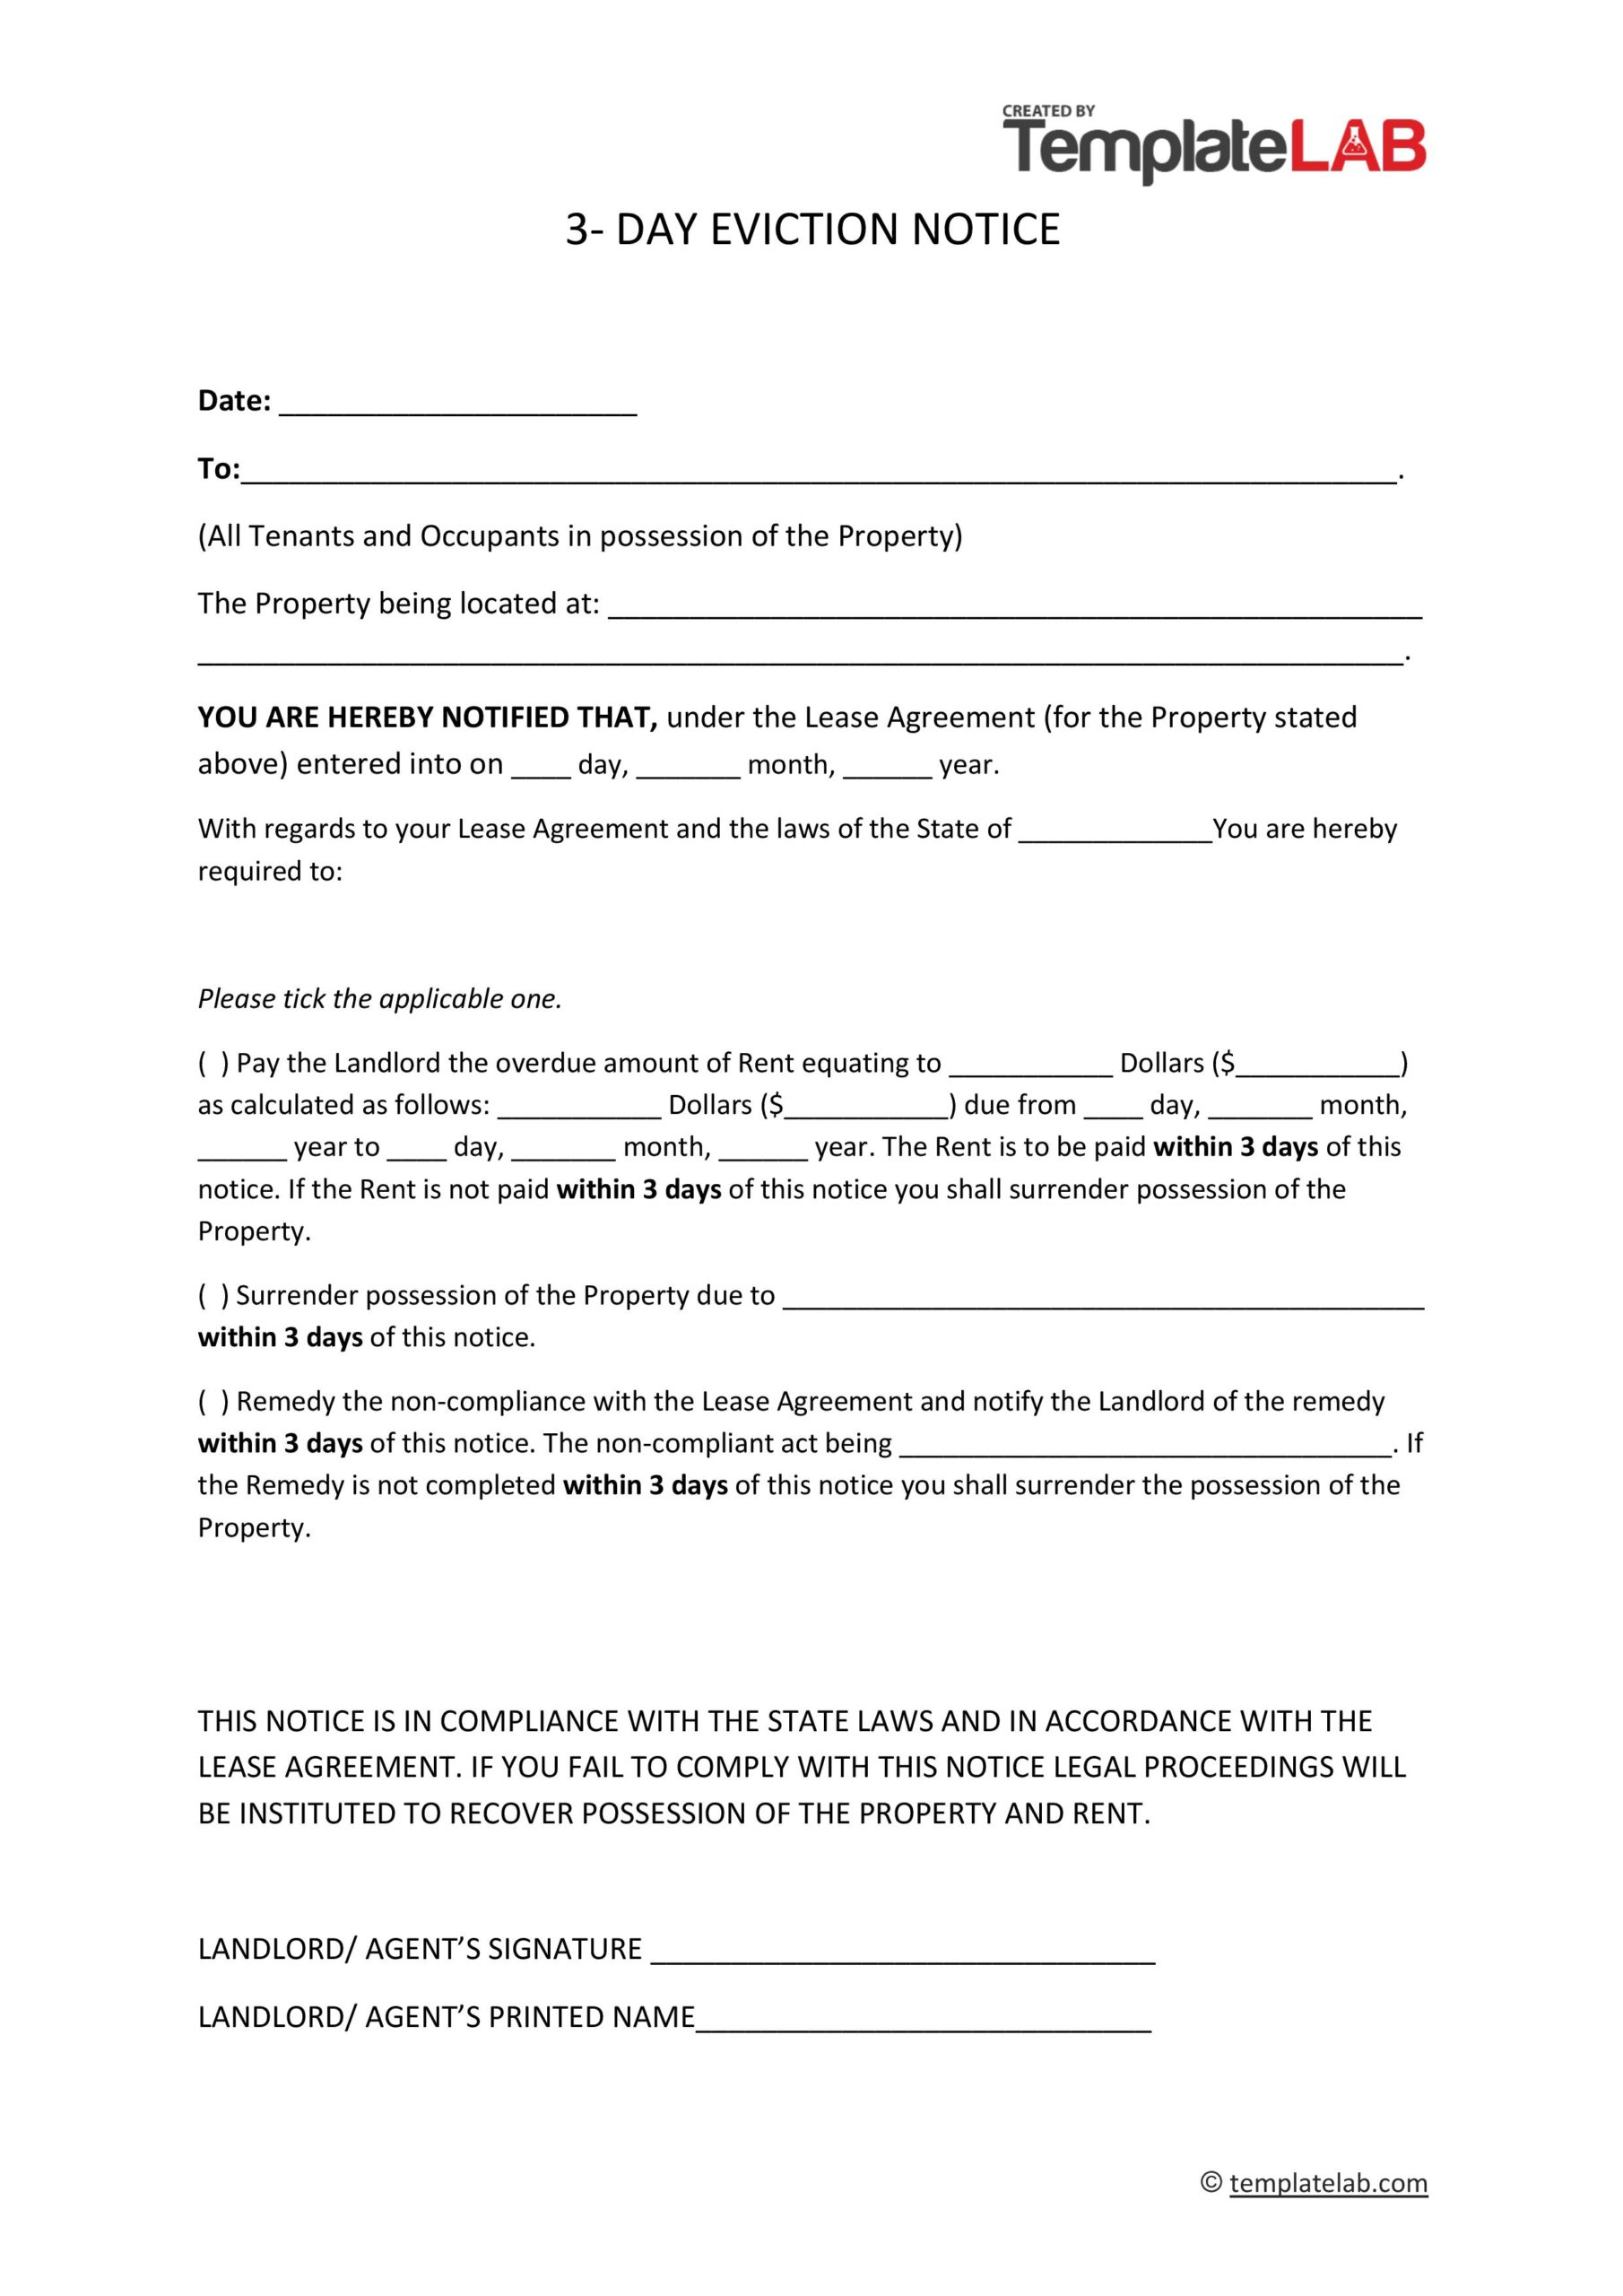 Free 3 Days Eviction Notice Template